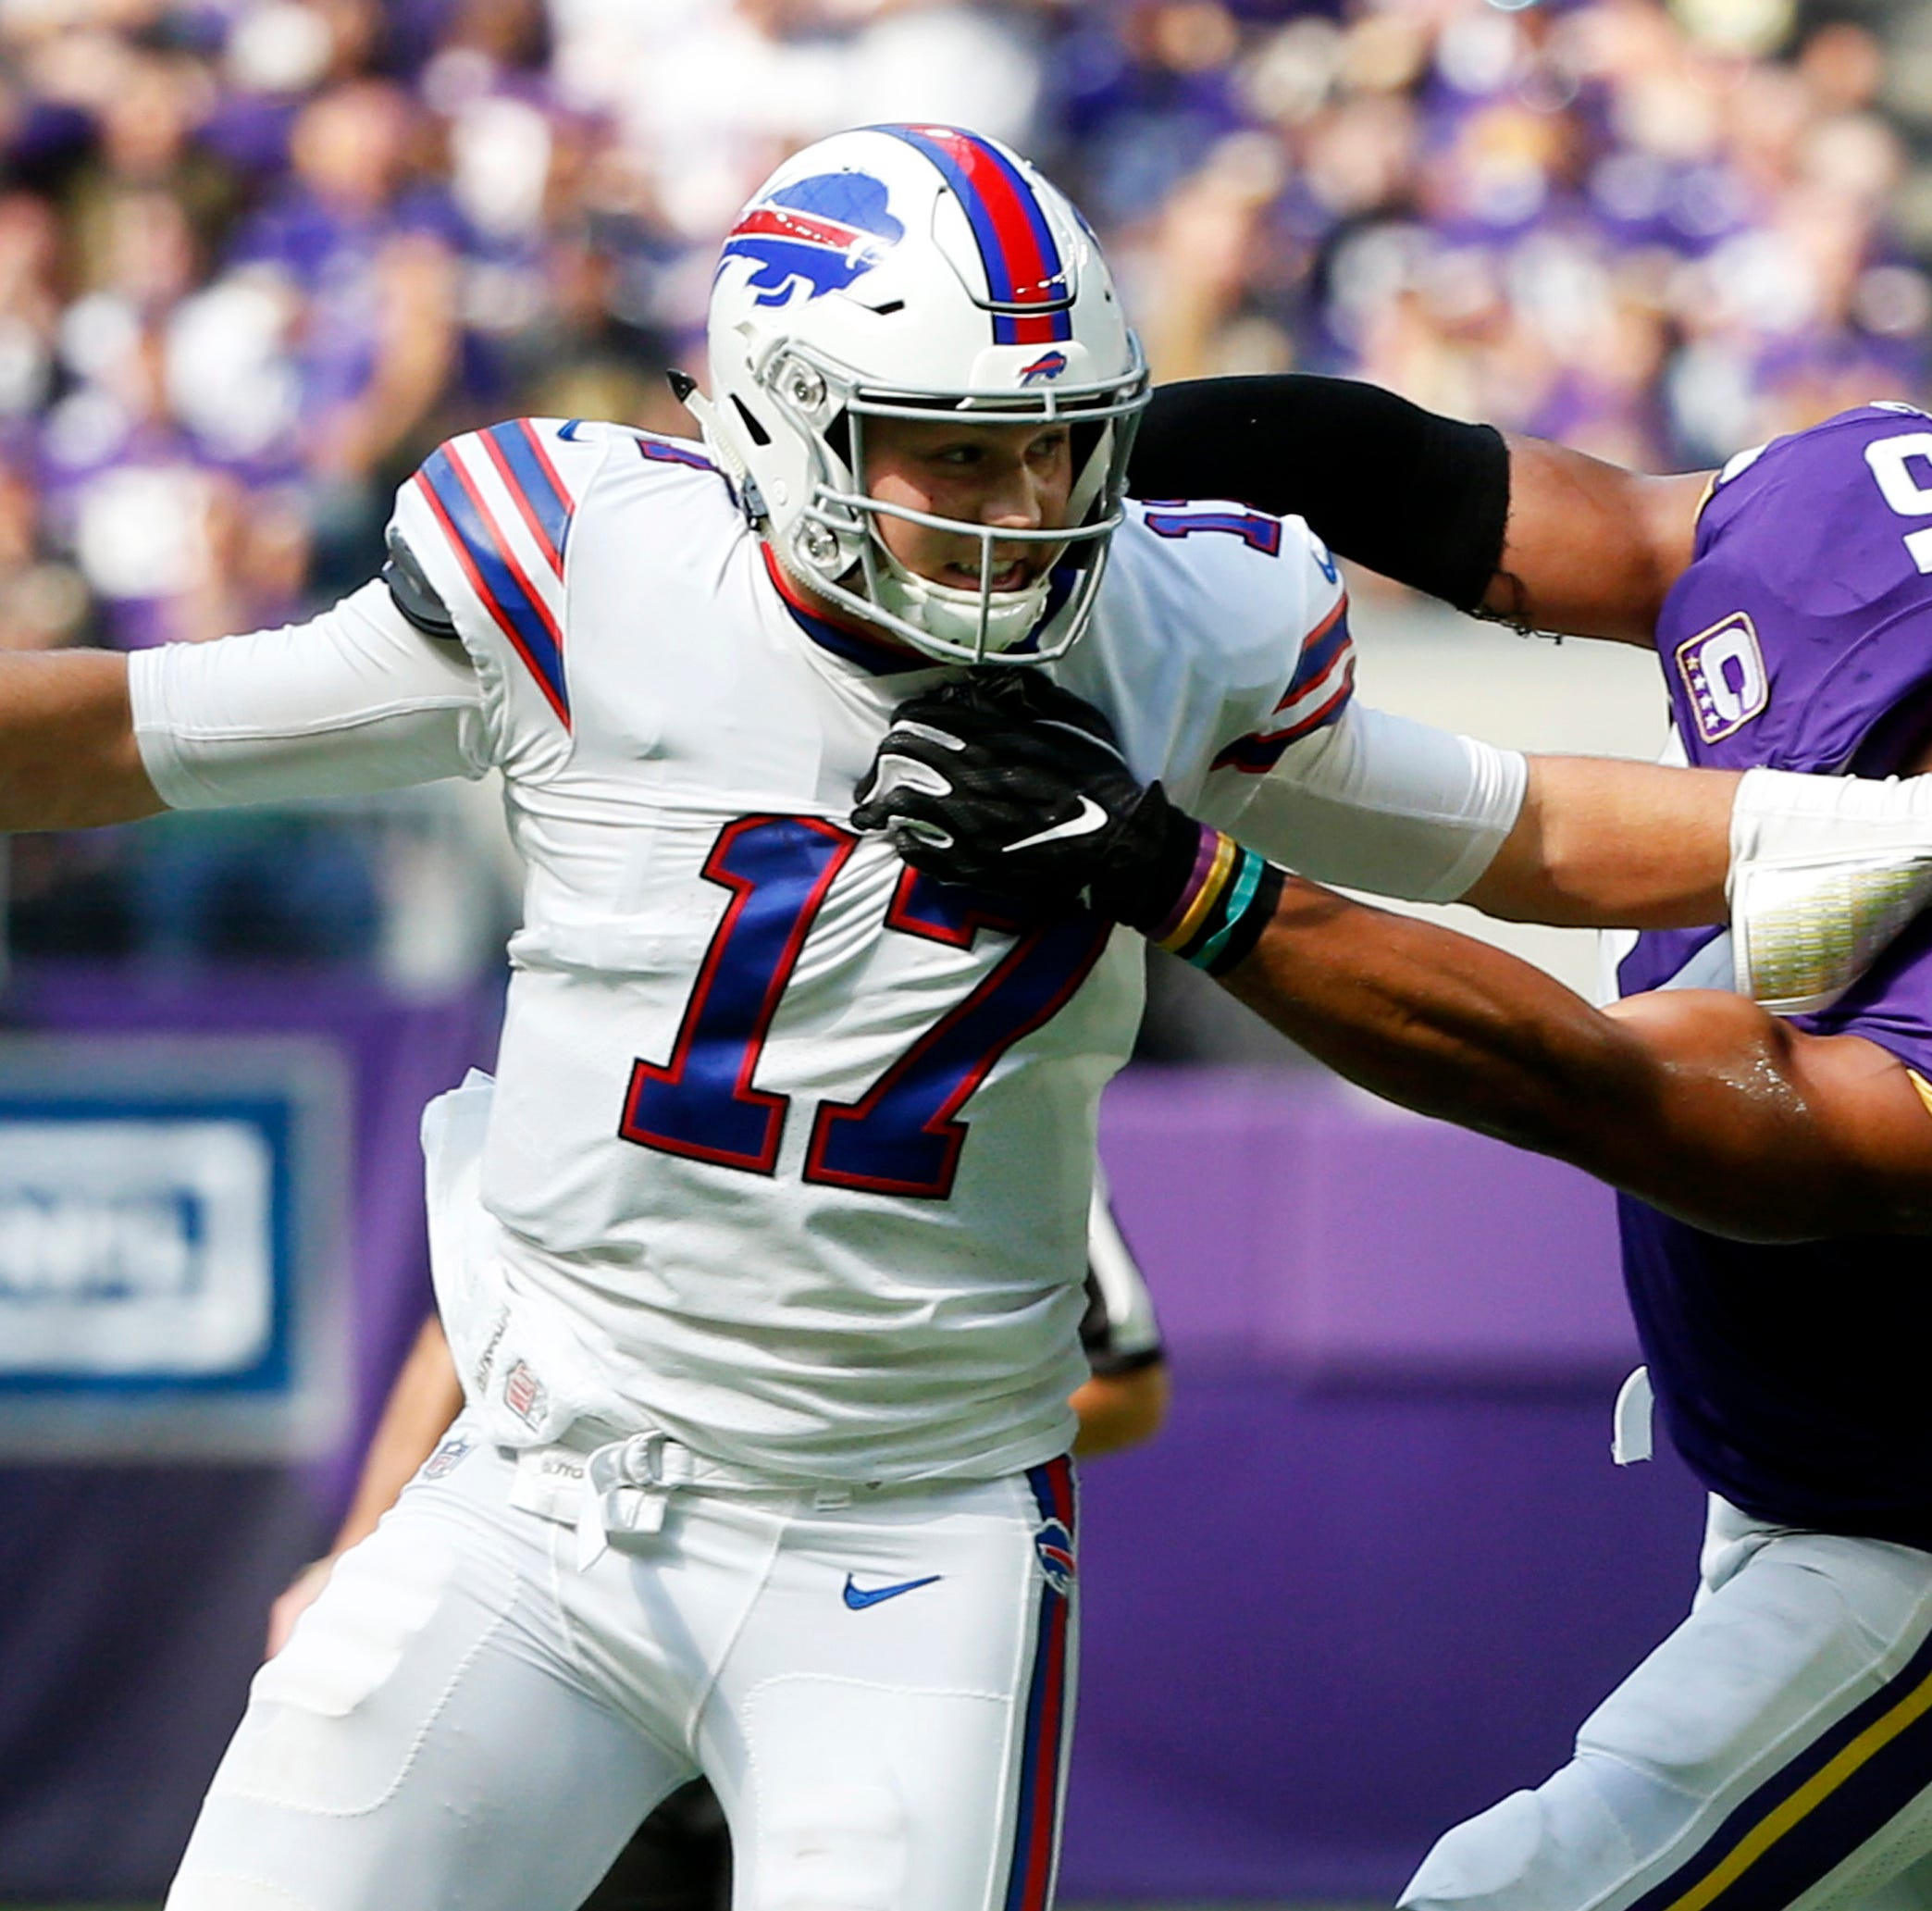 Green Bay Packers' next opponent: Quick takes on the Buffalo Bills